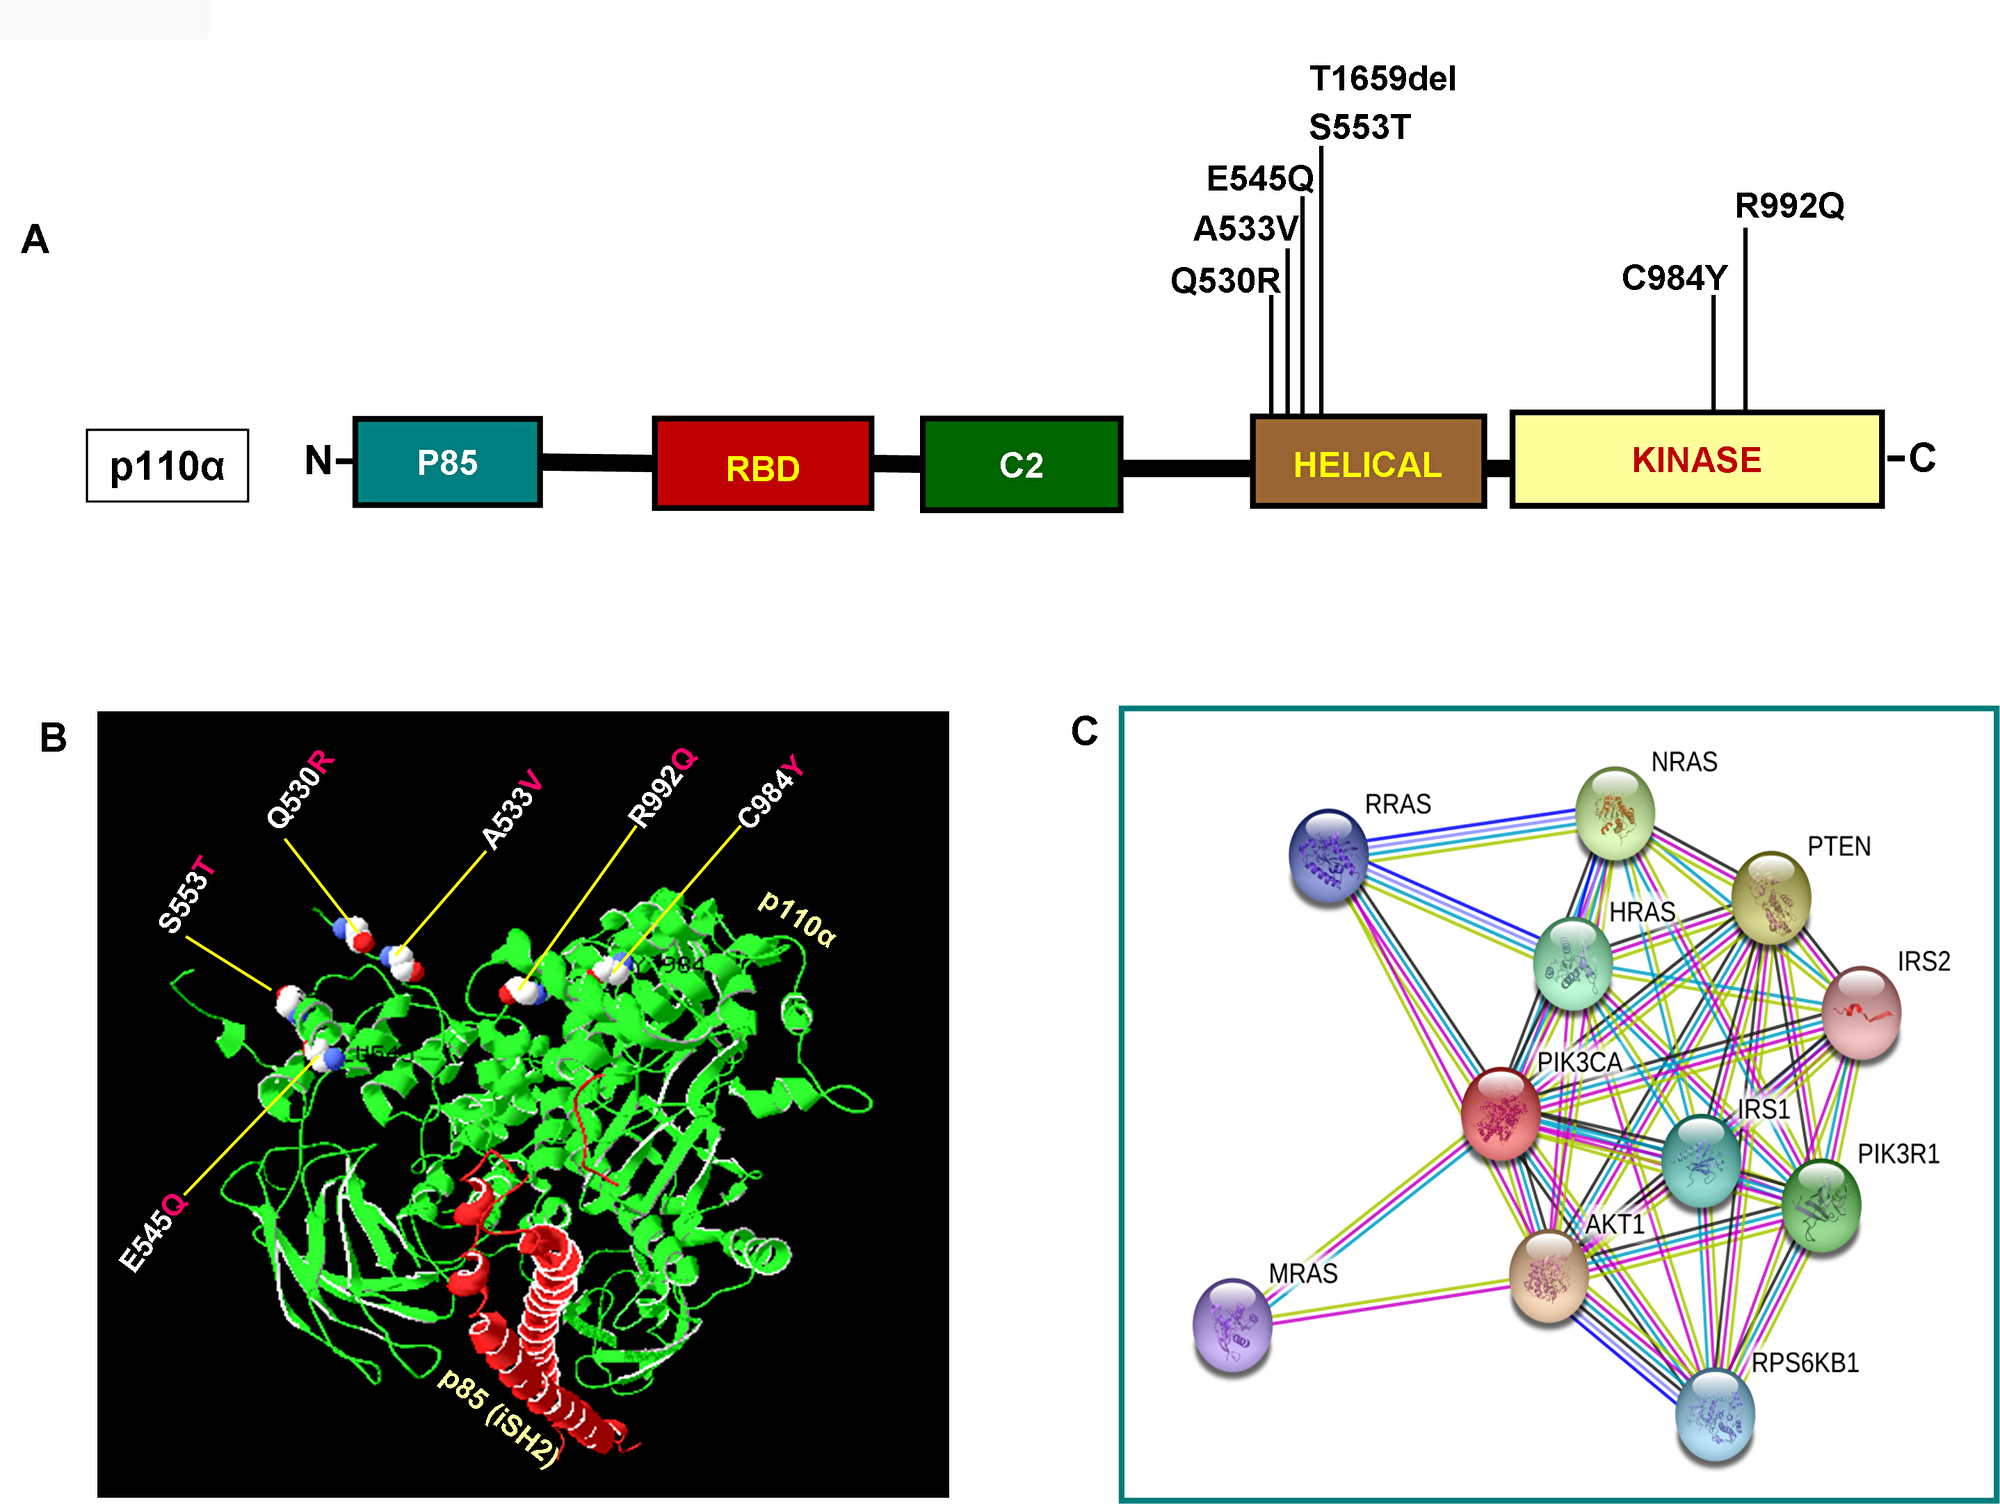 Functional domains of p110α and its interactome.